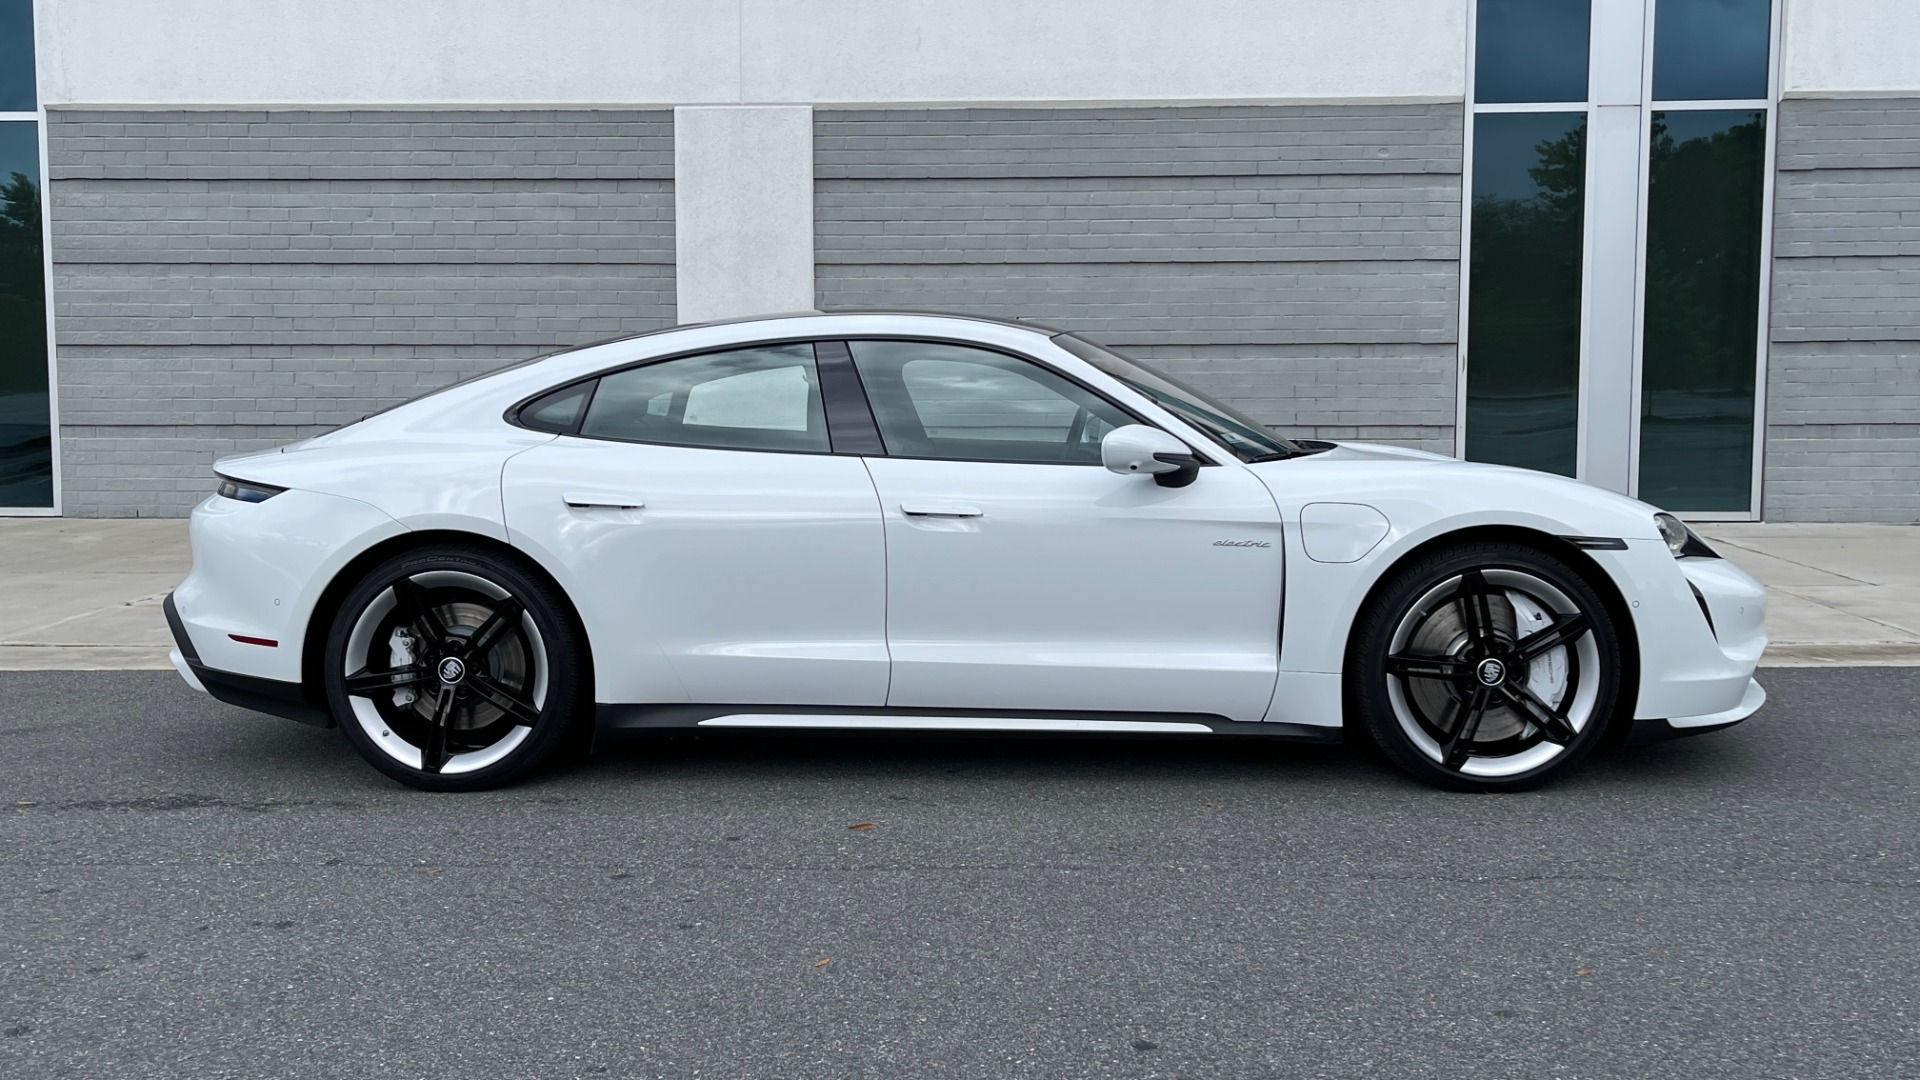 Used 2020 Porsche TAYCAN TURBO SEDAN / AWD / NAV / BOSE / PANO-ROOF / LCA / SURROUND VIEW for sale $162,995 at Formula Imports in Charlotte NC 28227 6